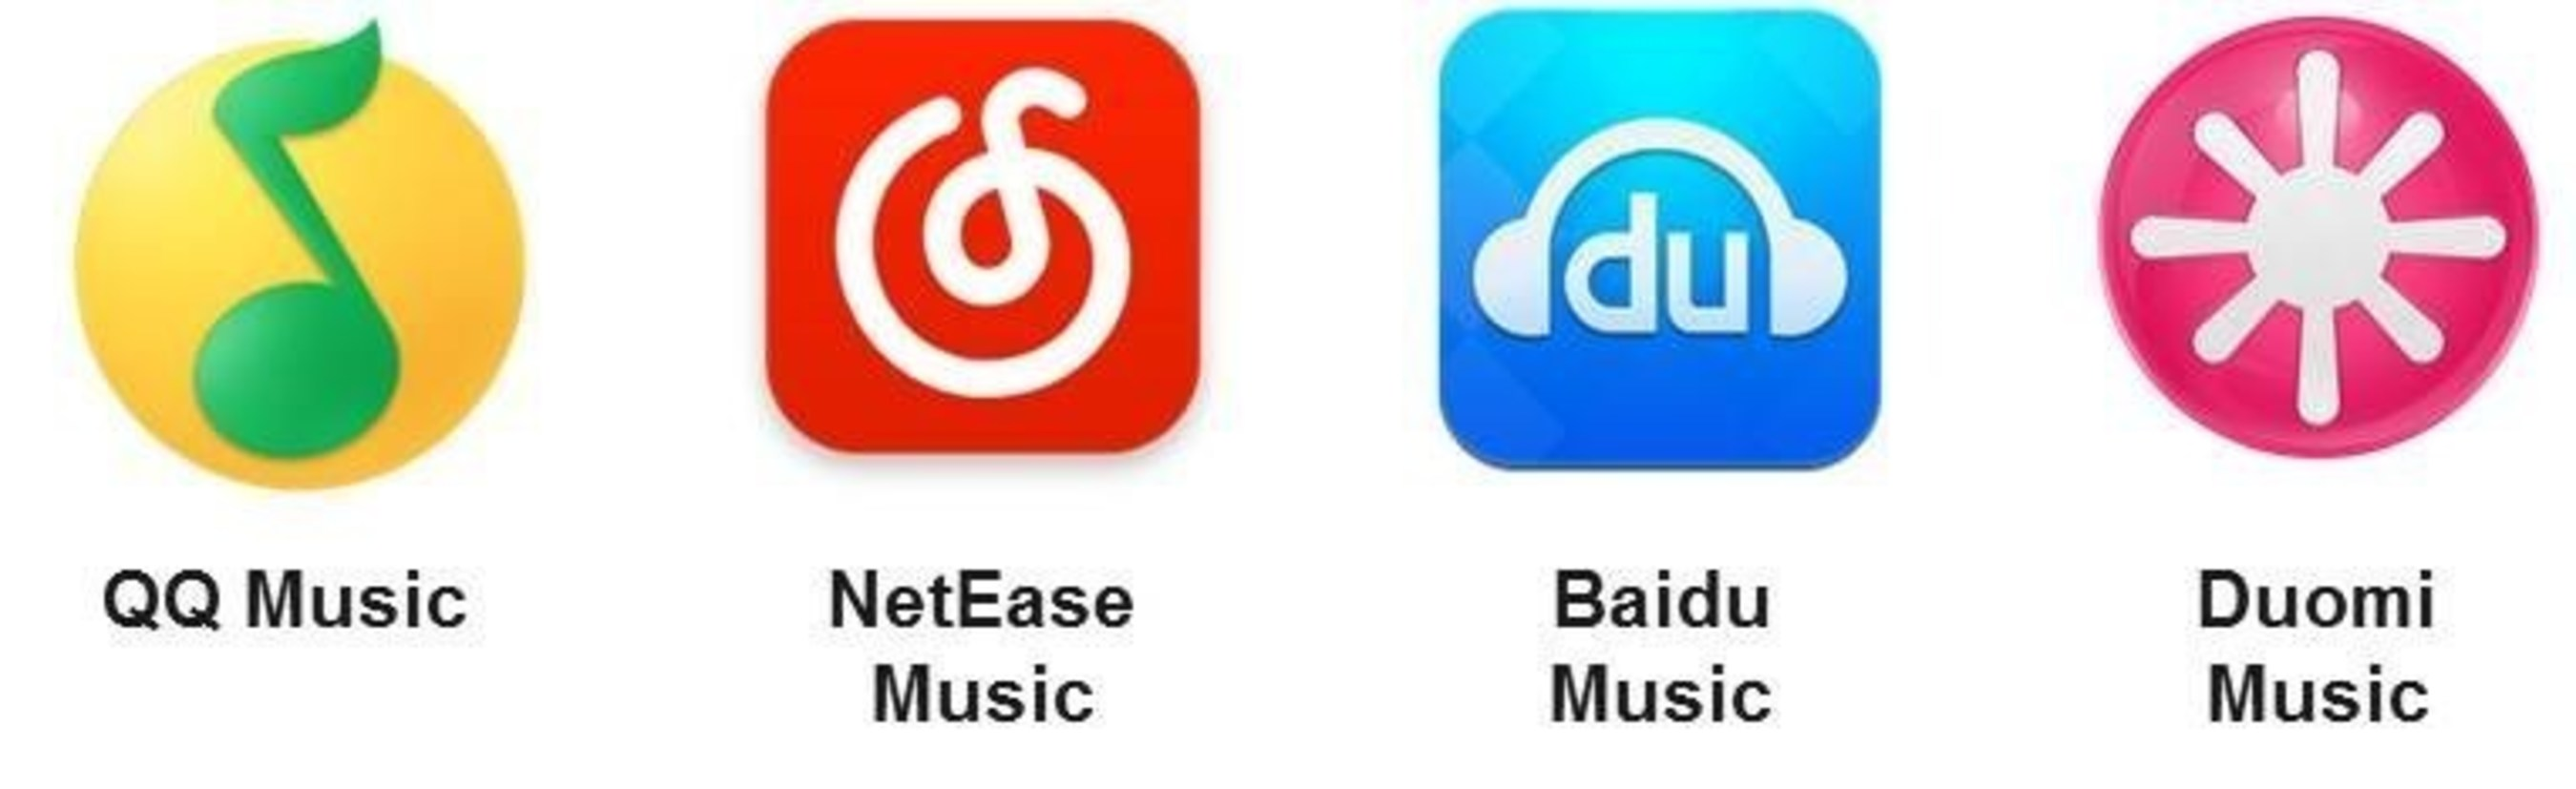 Chinese Music Apps Evaluation: NetEase Music Service Most Socialized